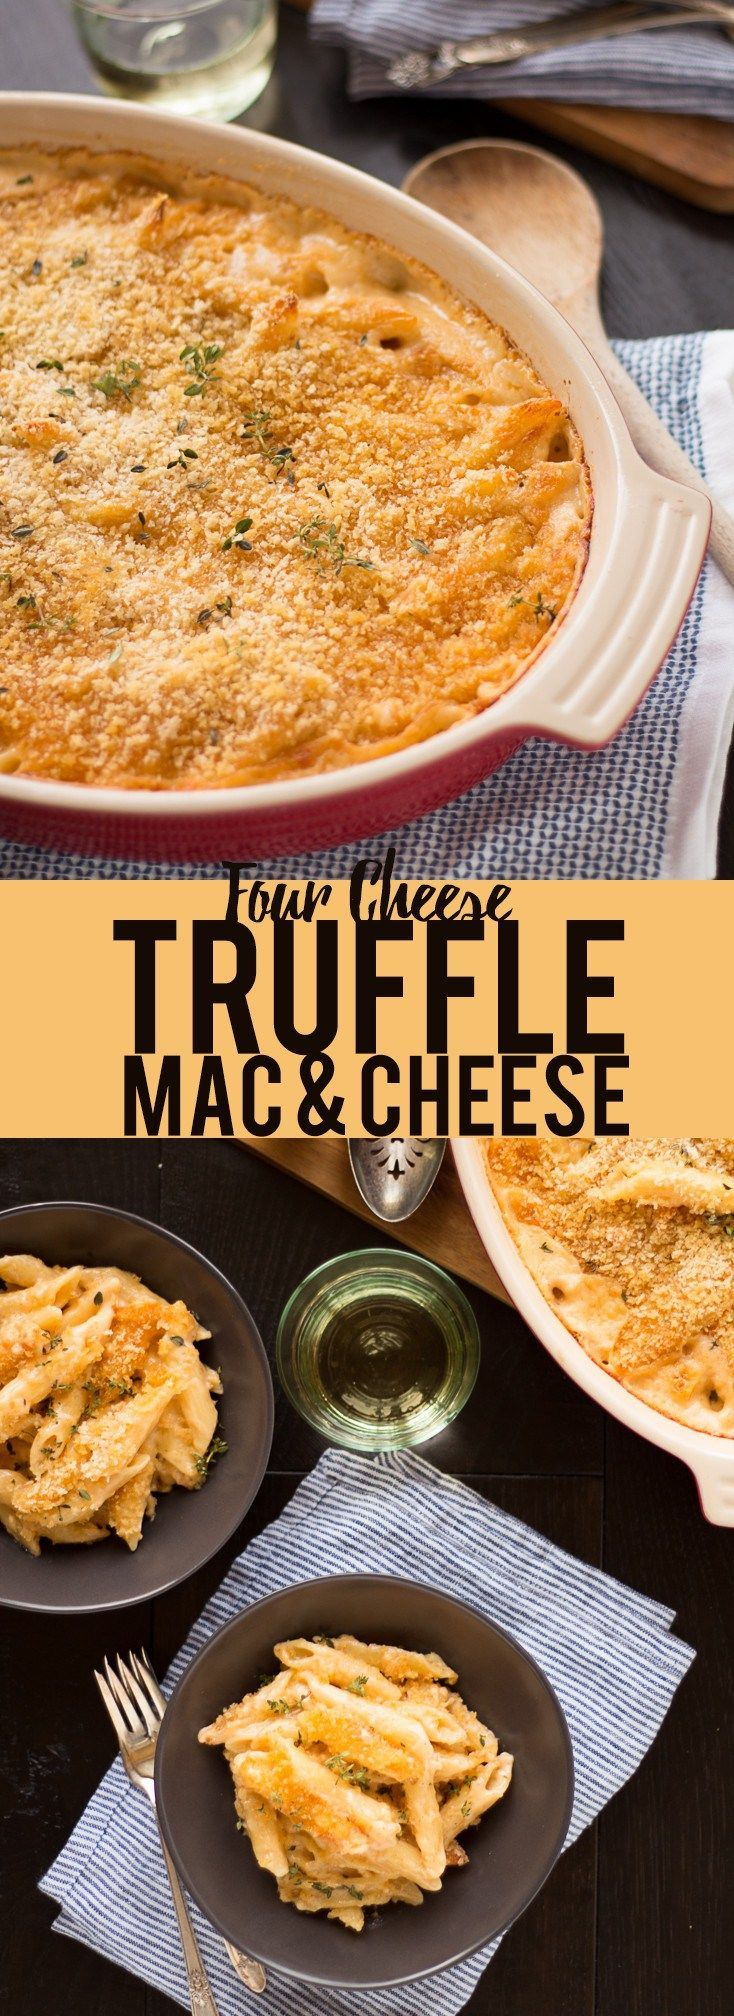 This decadent Four Cheese Truffle Mac and Cheese is creamy and delicious with a crispy topping! Four kinds of cheese, truffle oil and a panko topping make this the most delicious mac and cheese you have ever had! #TasteofItaly #sponsored